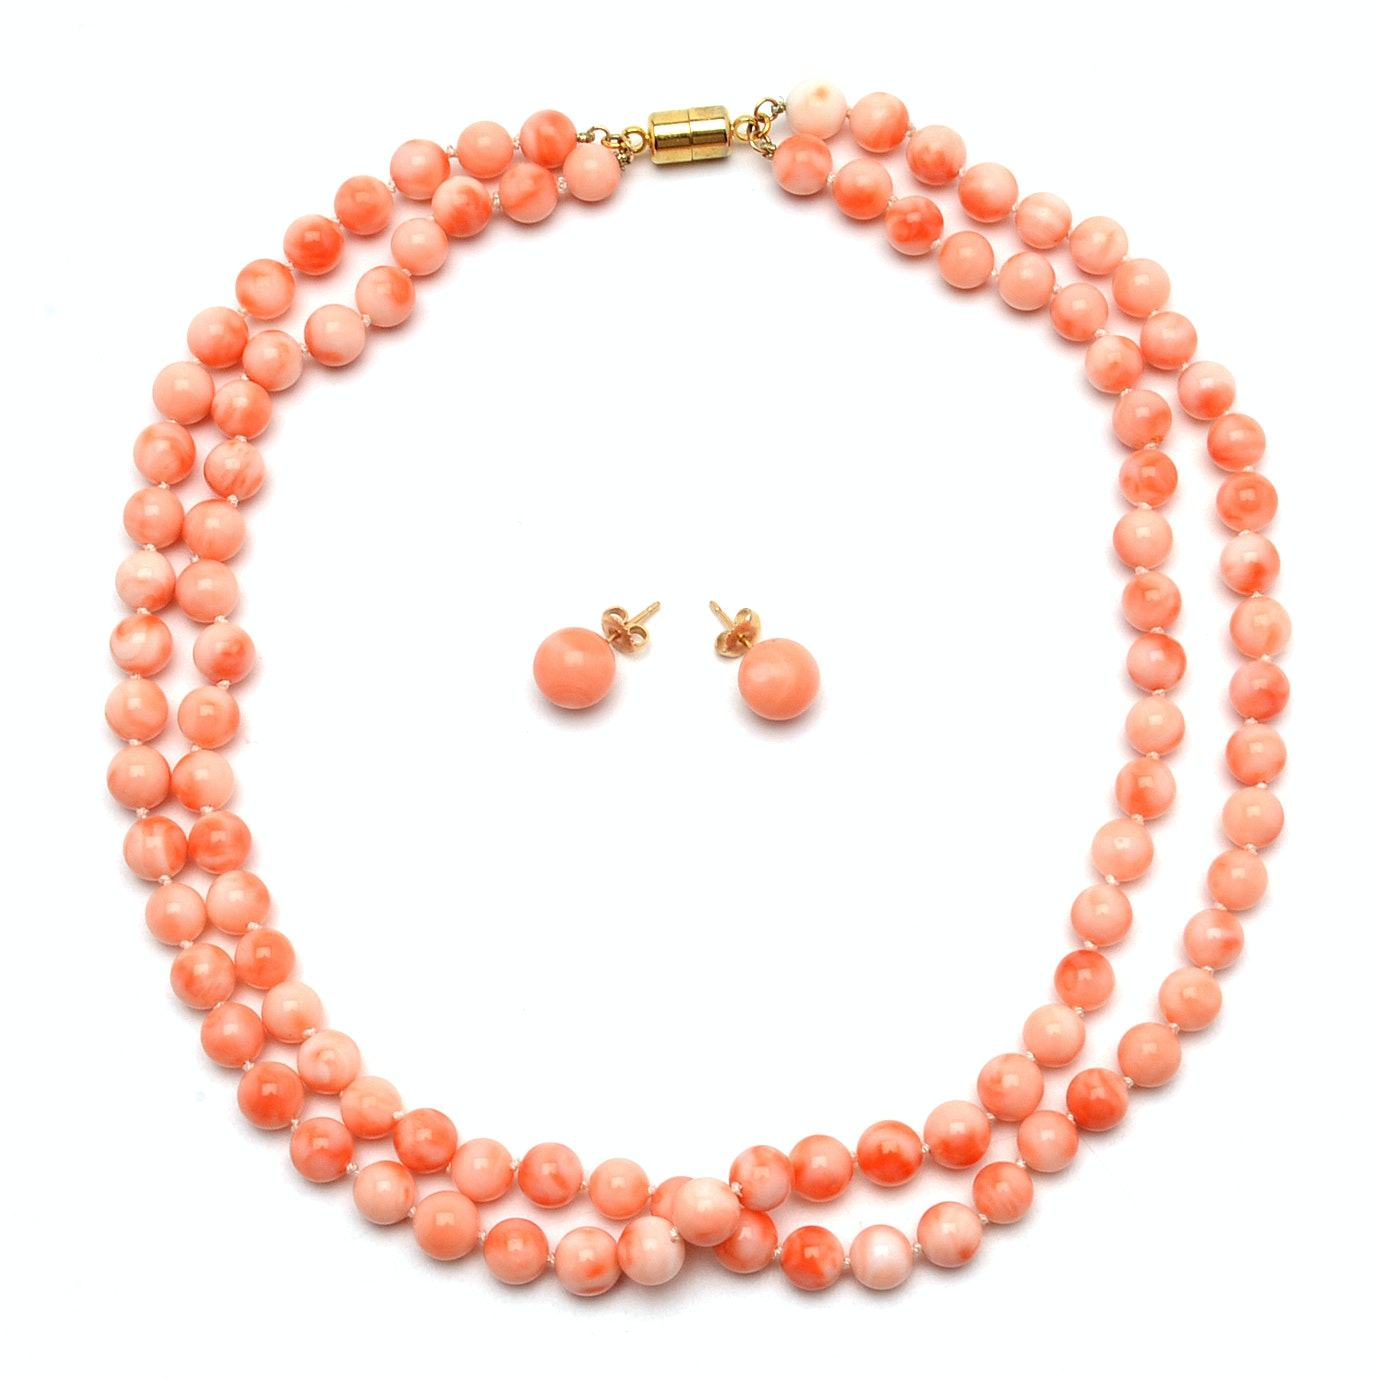 Hand Knotted Coral Double Strand Necklace with Coordinating Stud Earrings